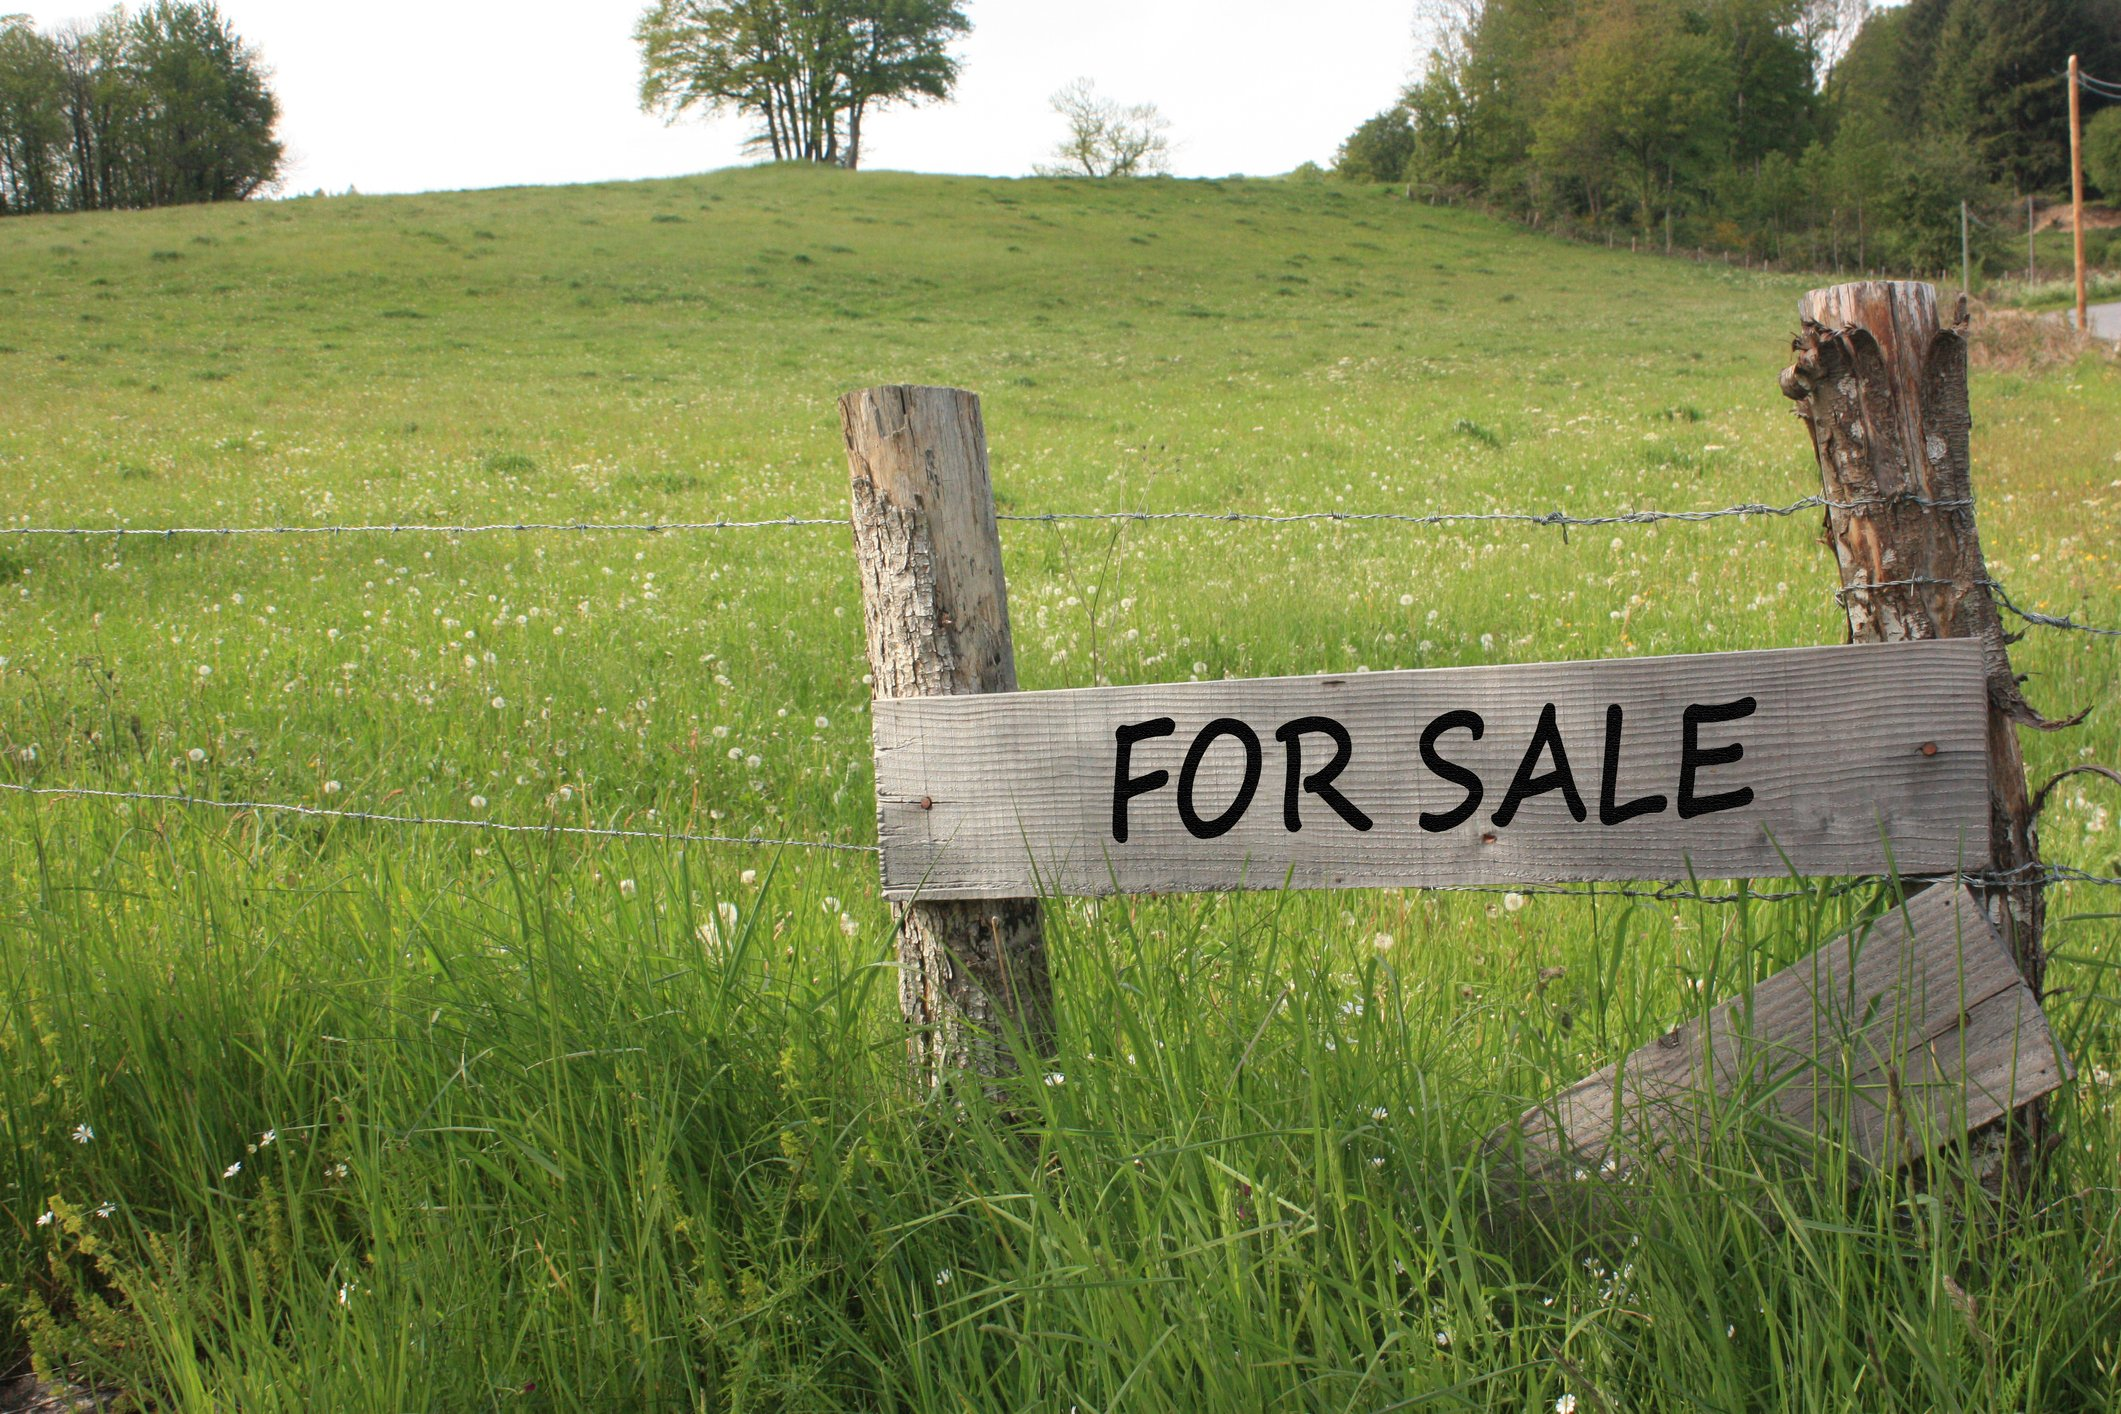 12 Things To Look For In A Homesteading Property